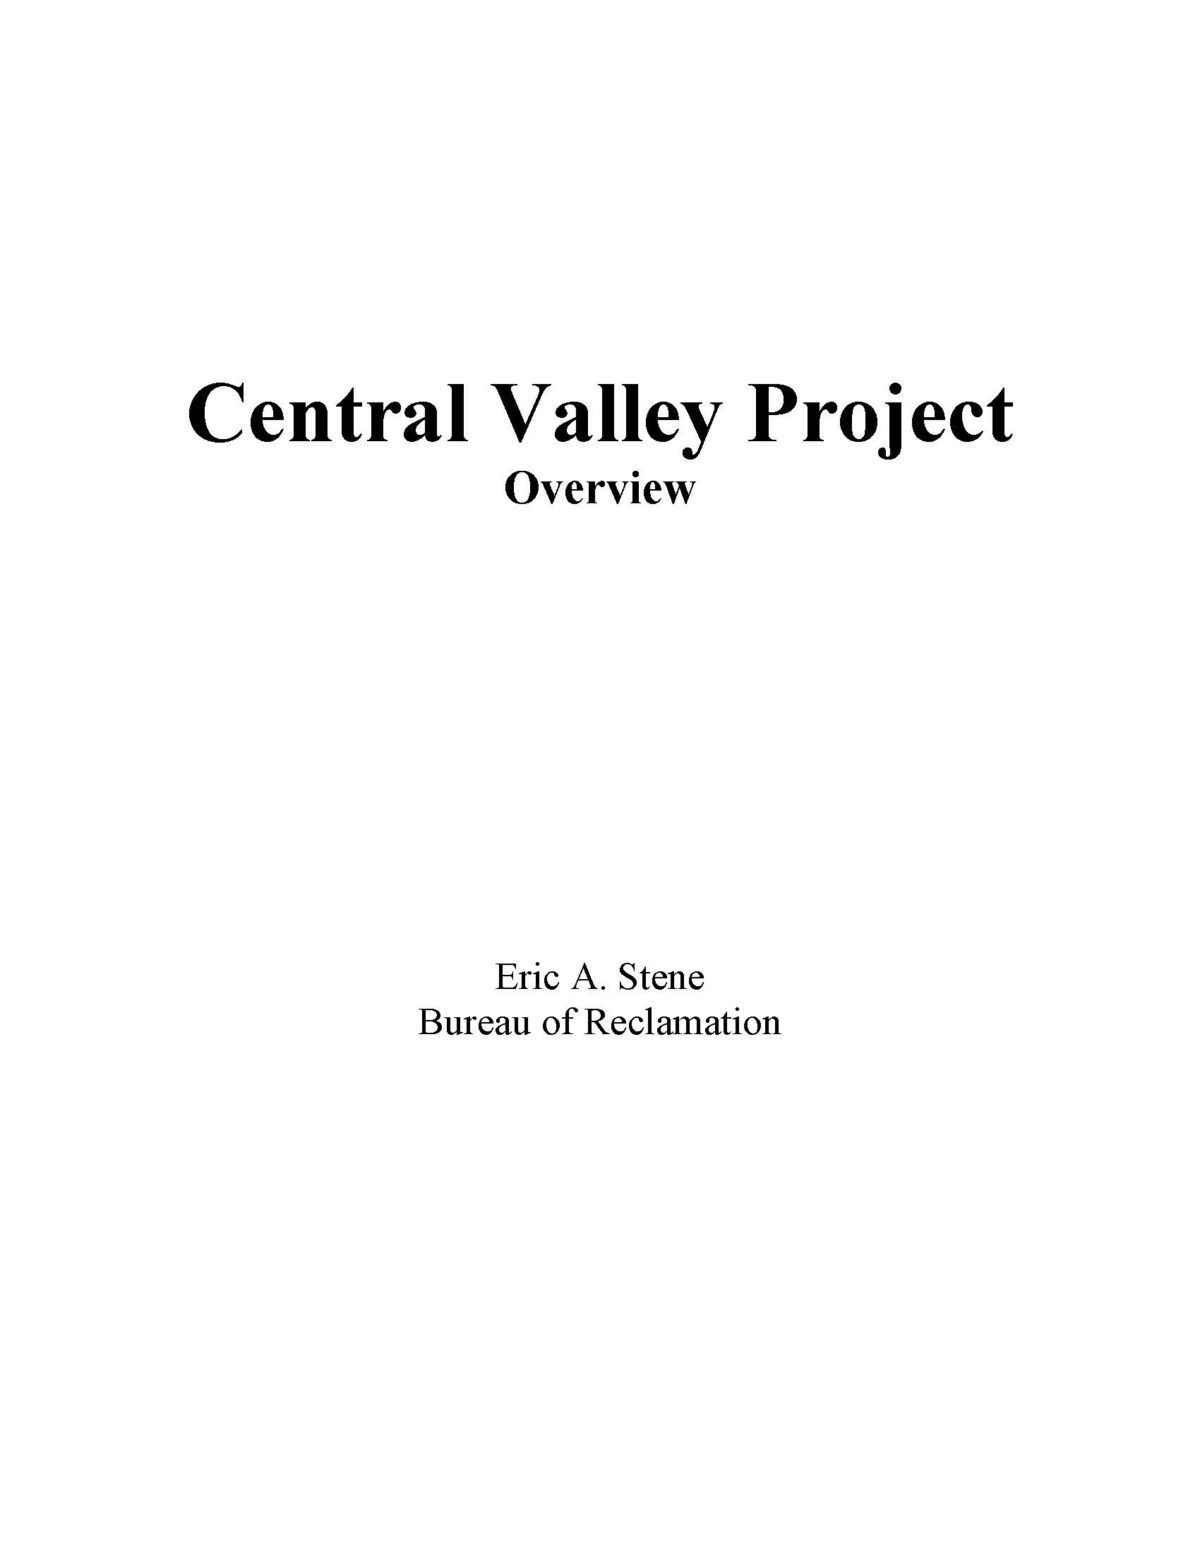 History of the Central Valley Project